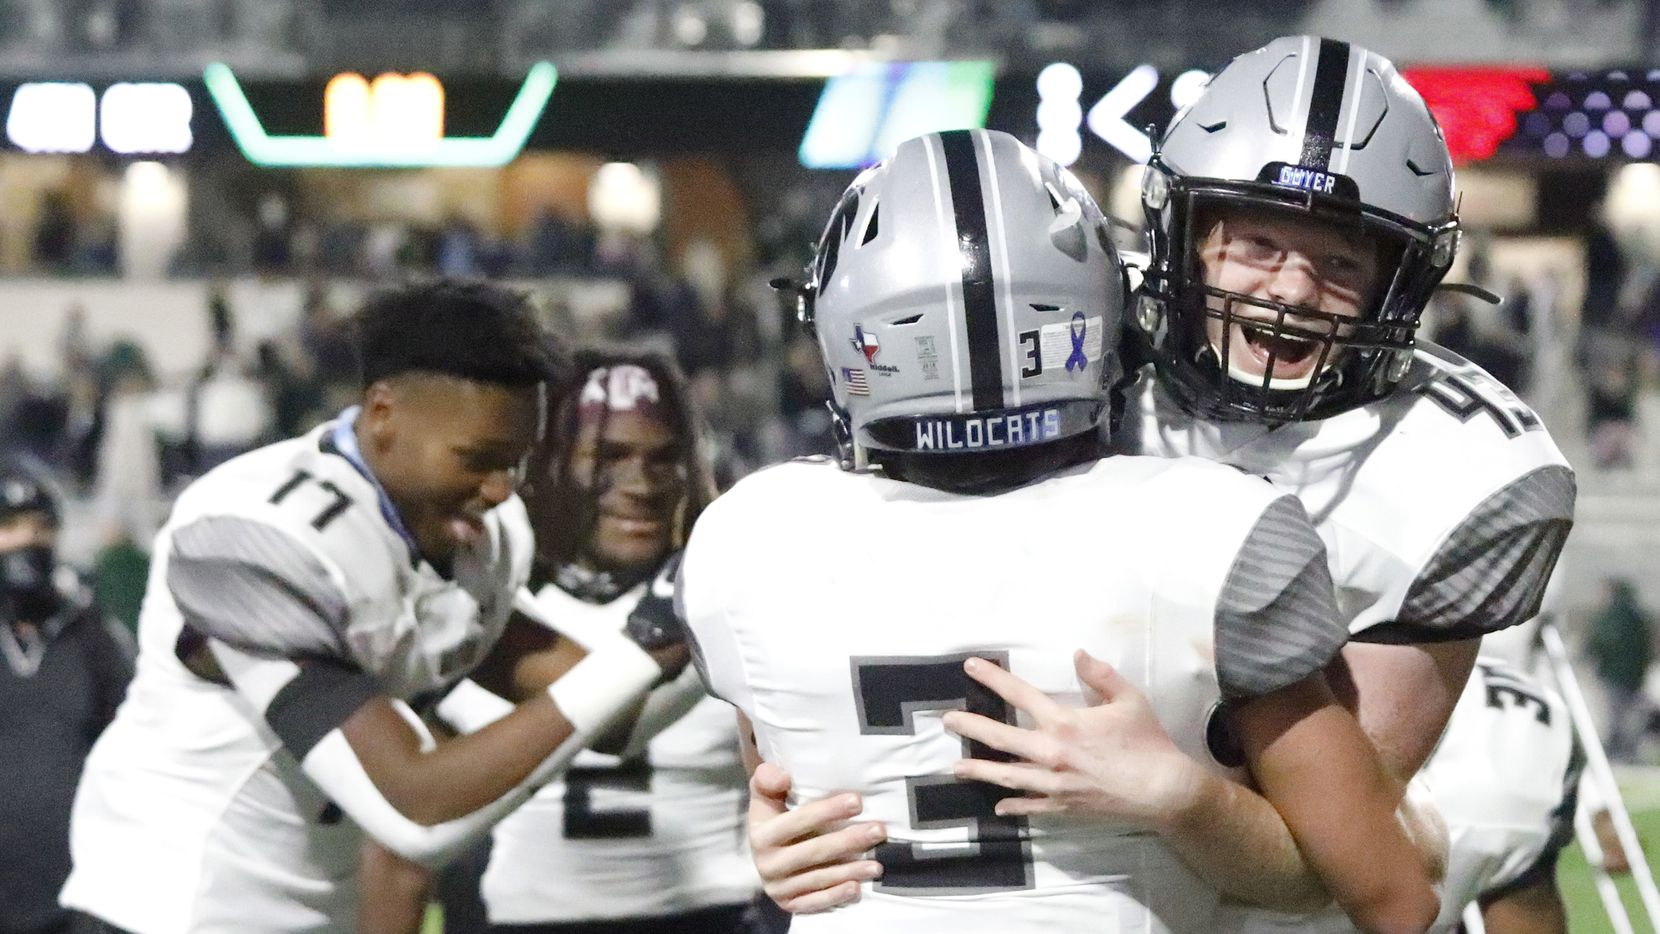 Denton Guyer High School kicker Michael Mayfield (43) is embraced by Denton Guyer High School quarterback Eli Stowers (3) after Mayfield kicked the winning extra point with no time left on the clock at the end of the game as Prosper High School hosted Denton Guyer High School in a District 5-6A football game at Children's Health Stadium in Prosper on Friday night, October 30, 2020.